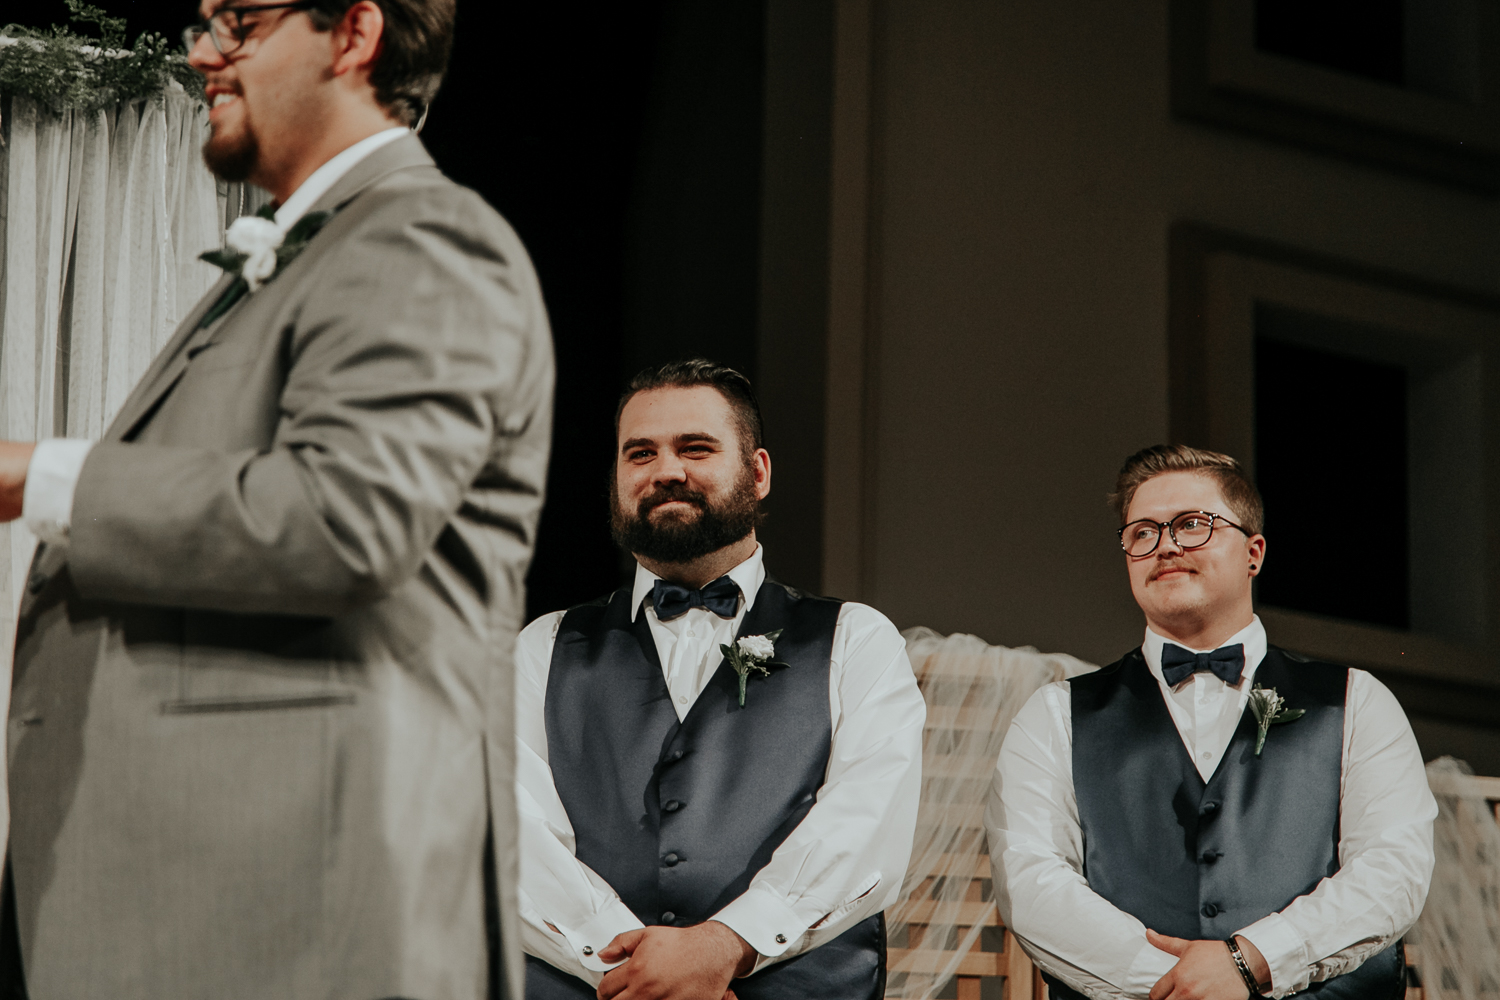 lethbridge-wedding-photographer-love-and-be-loved-photography-dan-tynnea-picture-image-photo-115.jpg